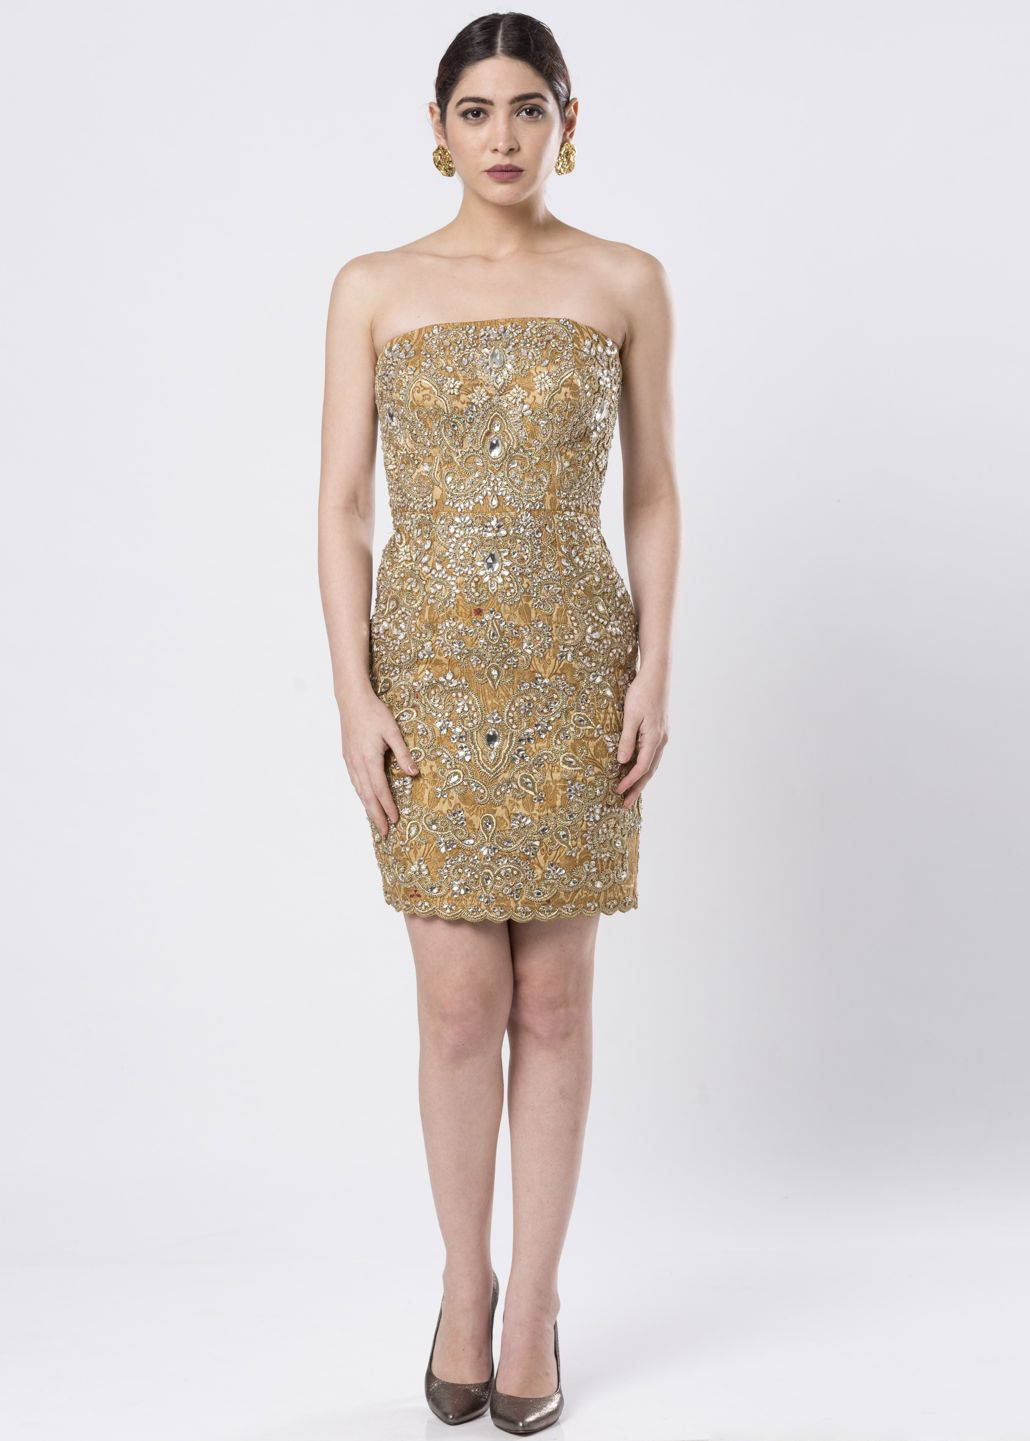 HAND EMBROIDERED BROCADE DRESS